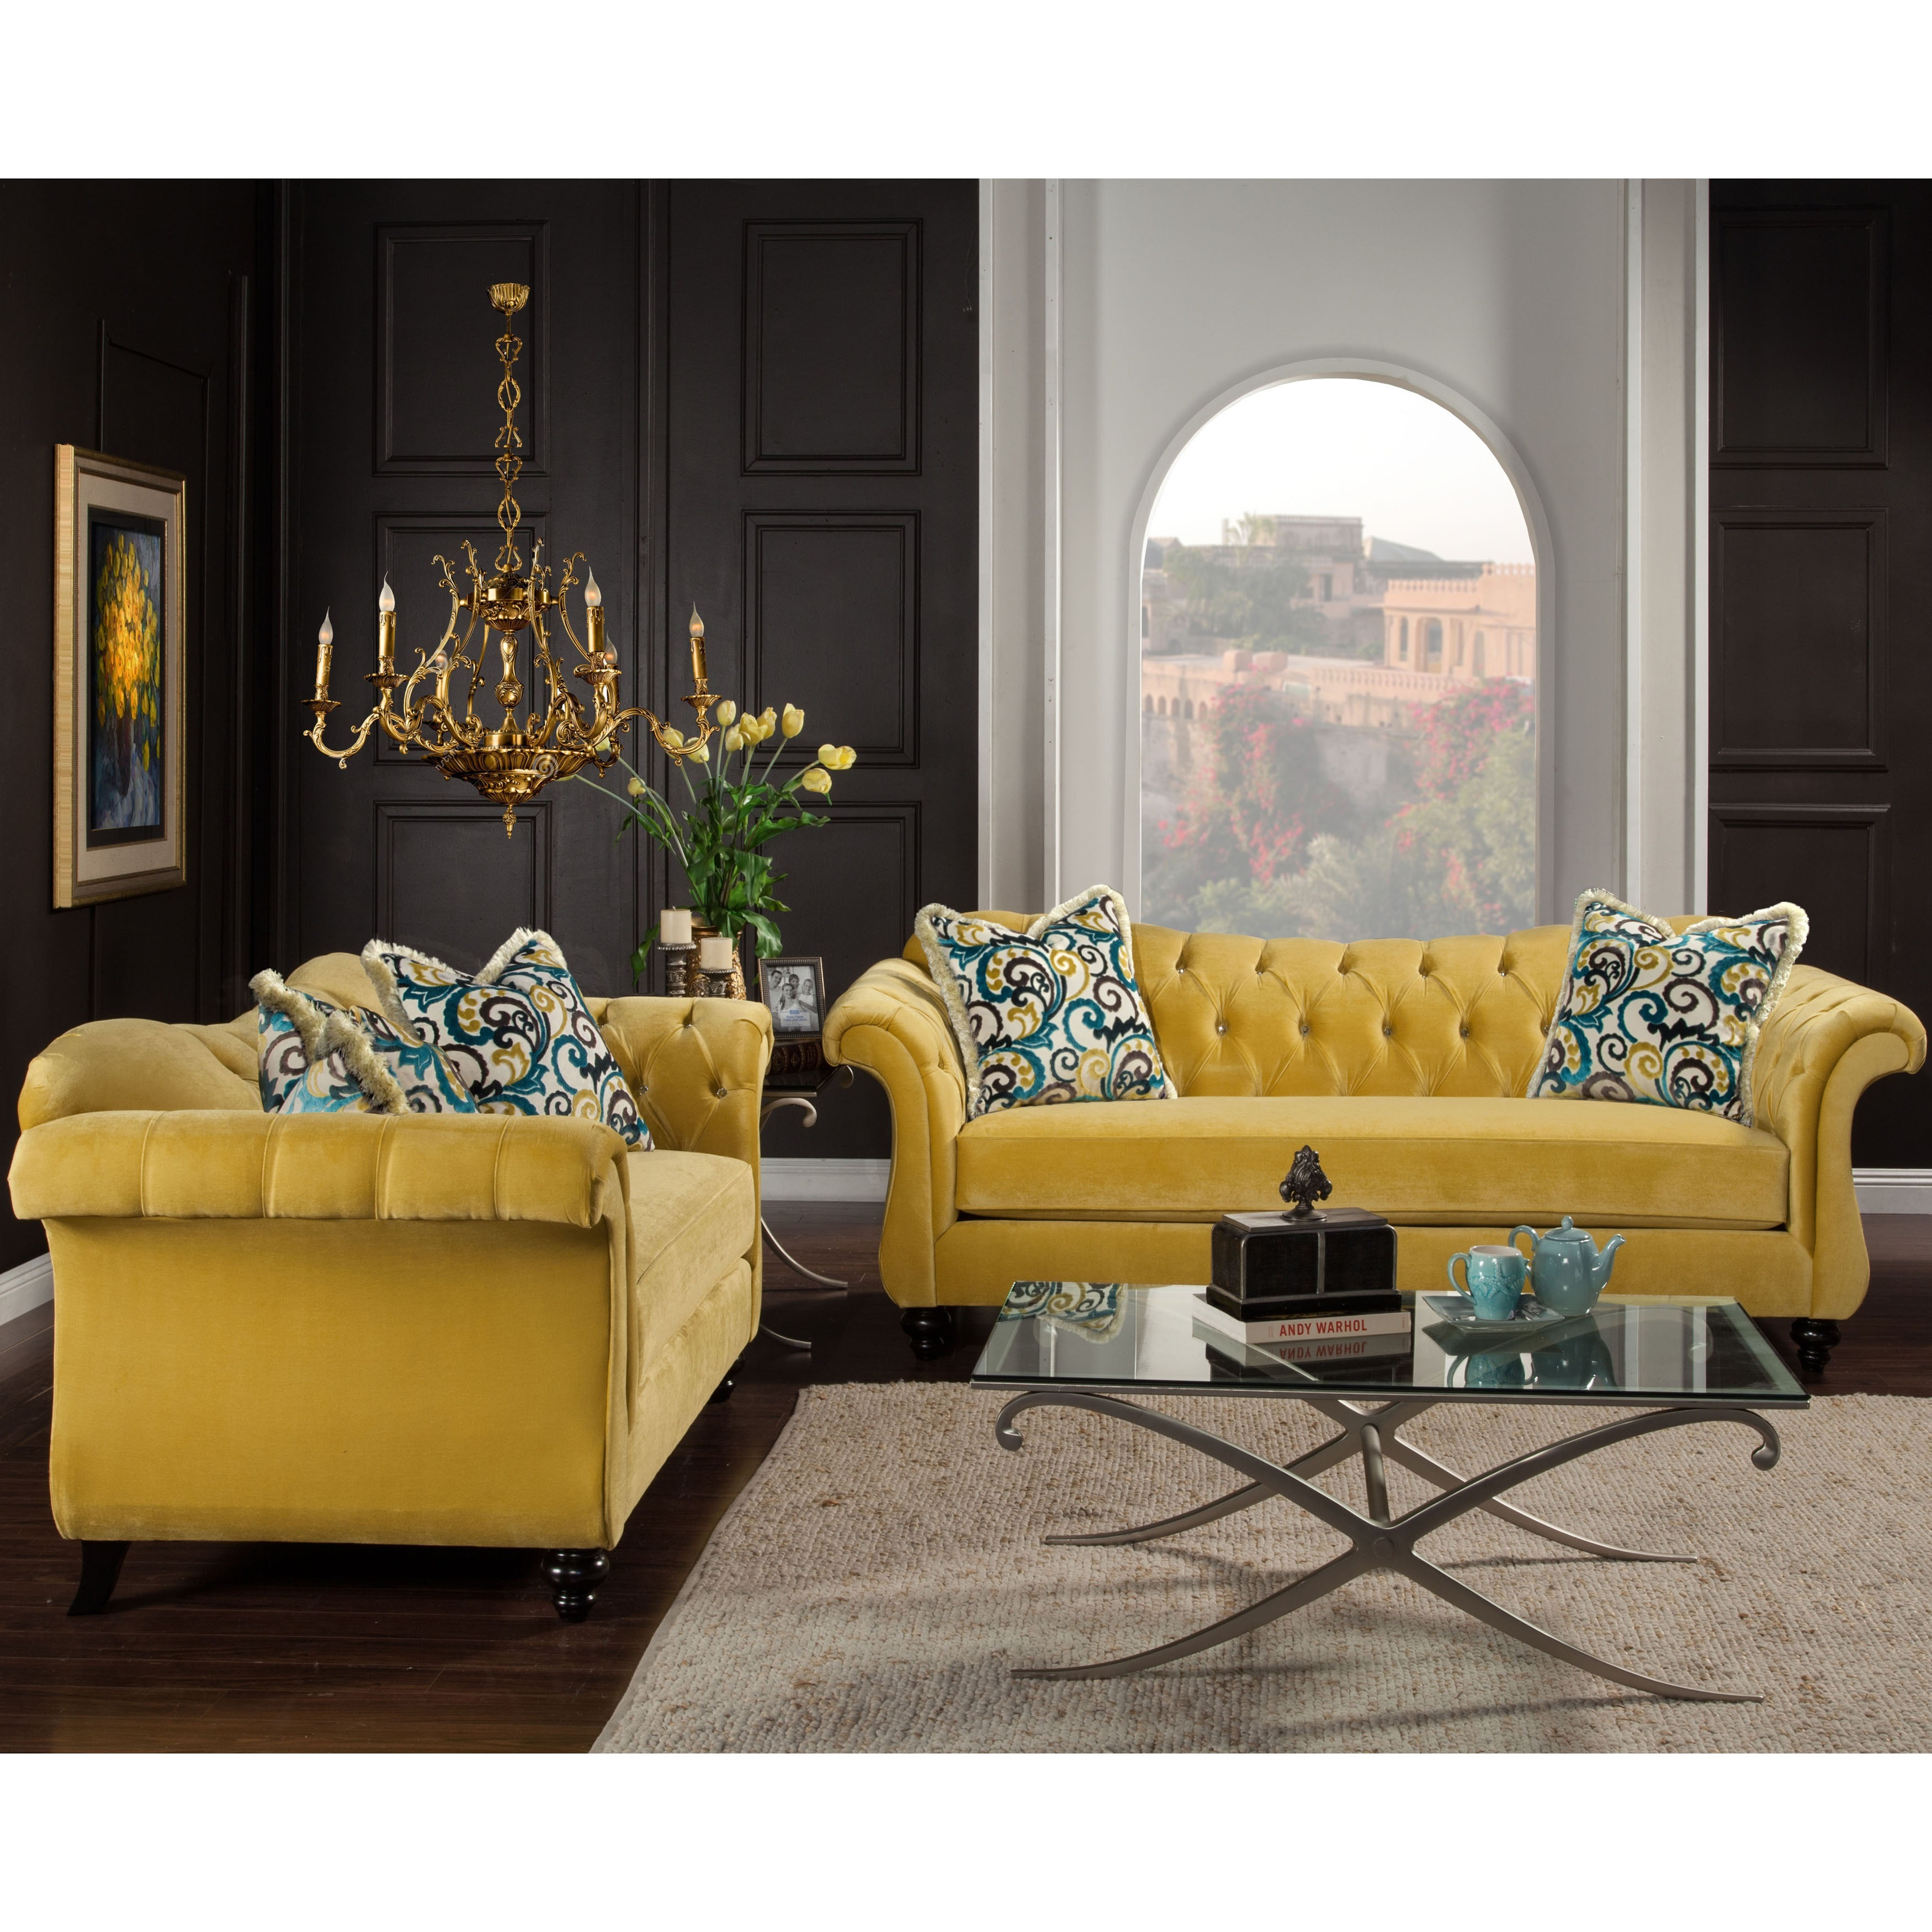 Overstock Com Online Shopping Bedding Furniture Electronics Jewelry Clothing More Sofa And Loveseat Set Perfect Living Room Color Living Room Decor Yellow living room set